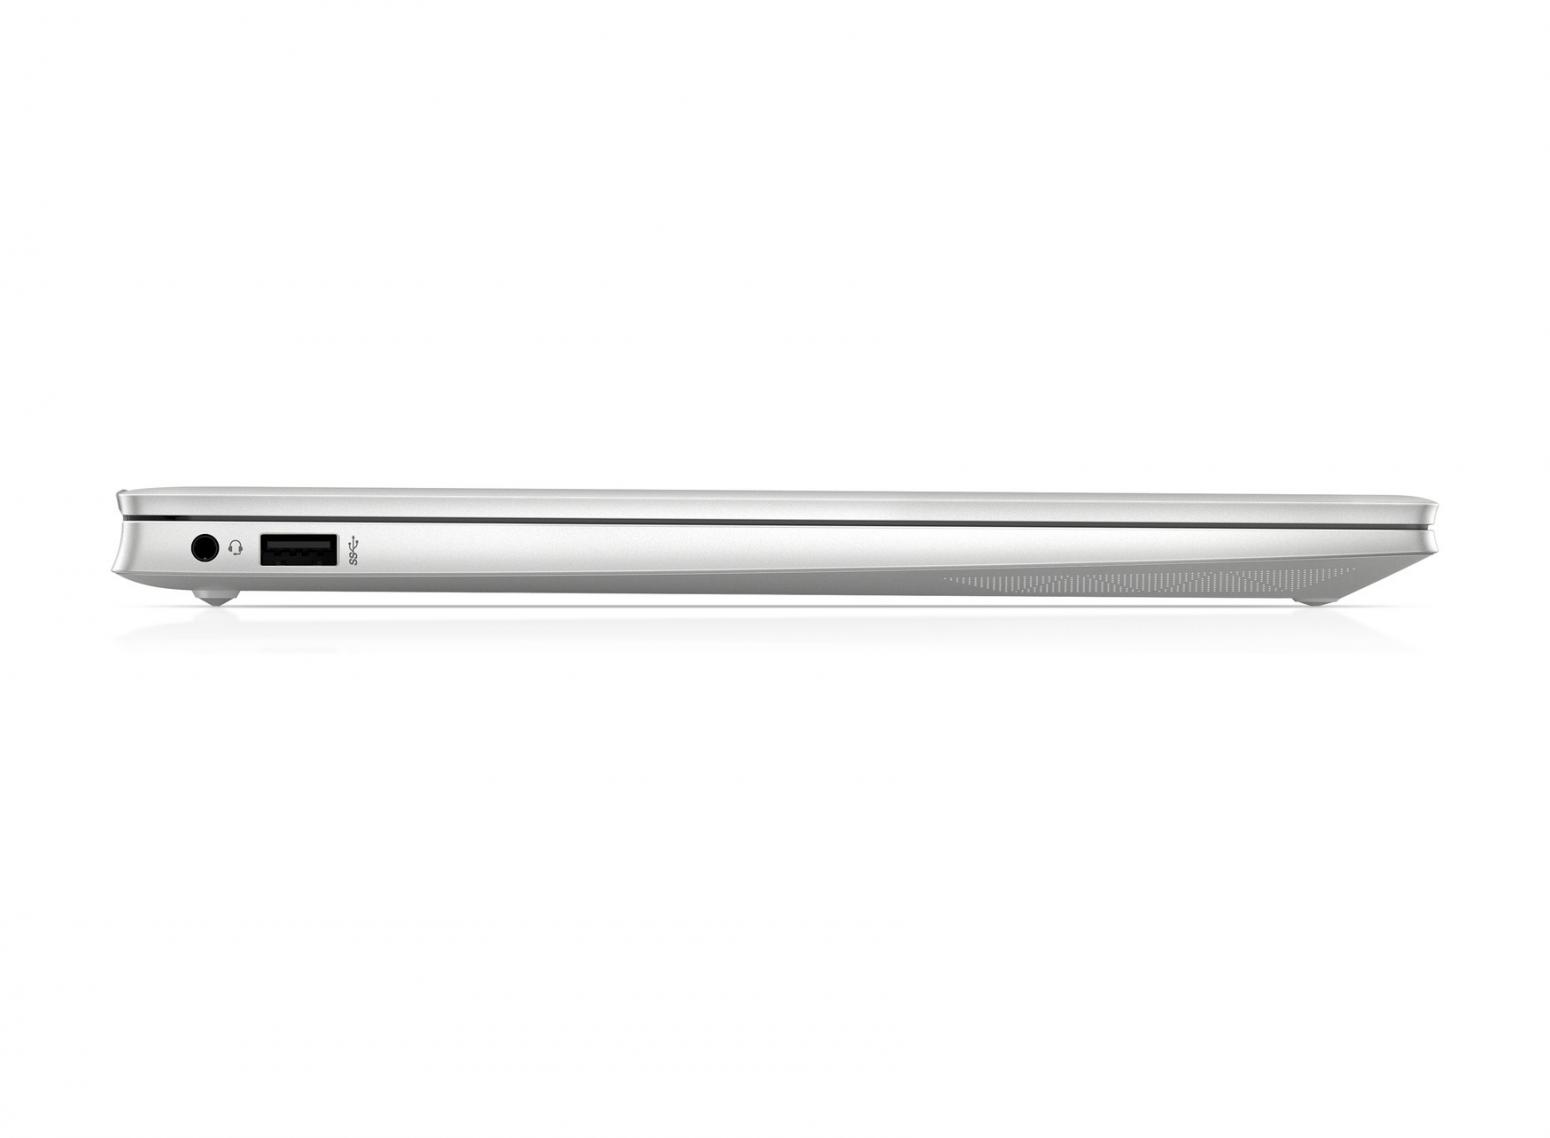 Ordinateur portable HP Pavilion 14-dv0043nf Argent - photo 5